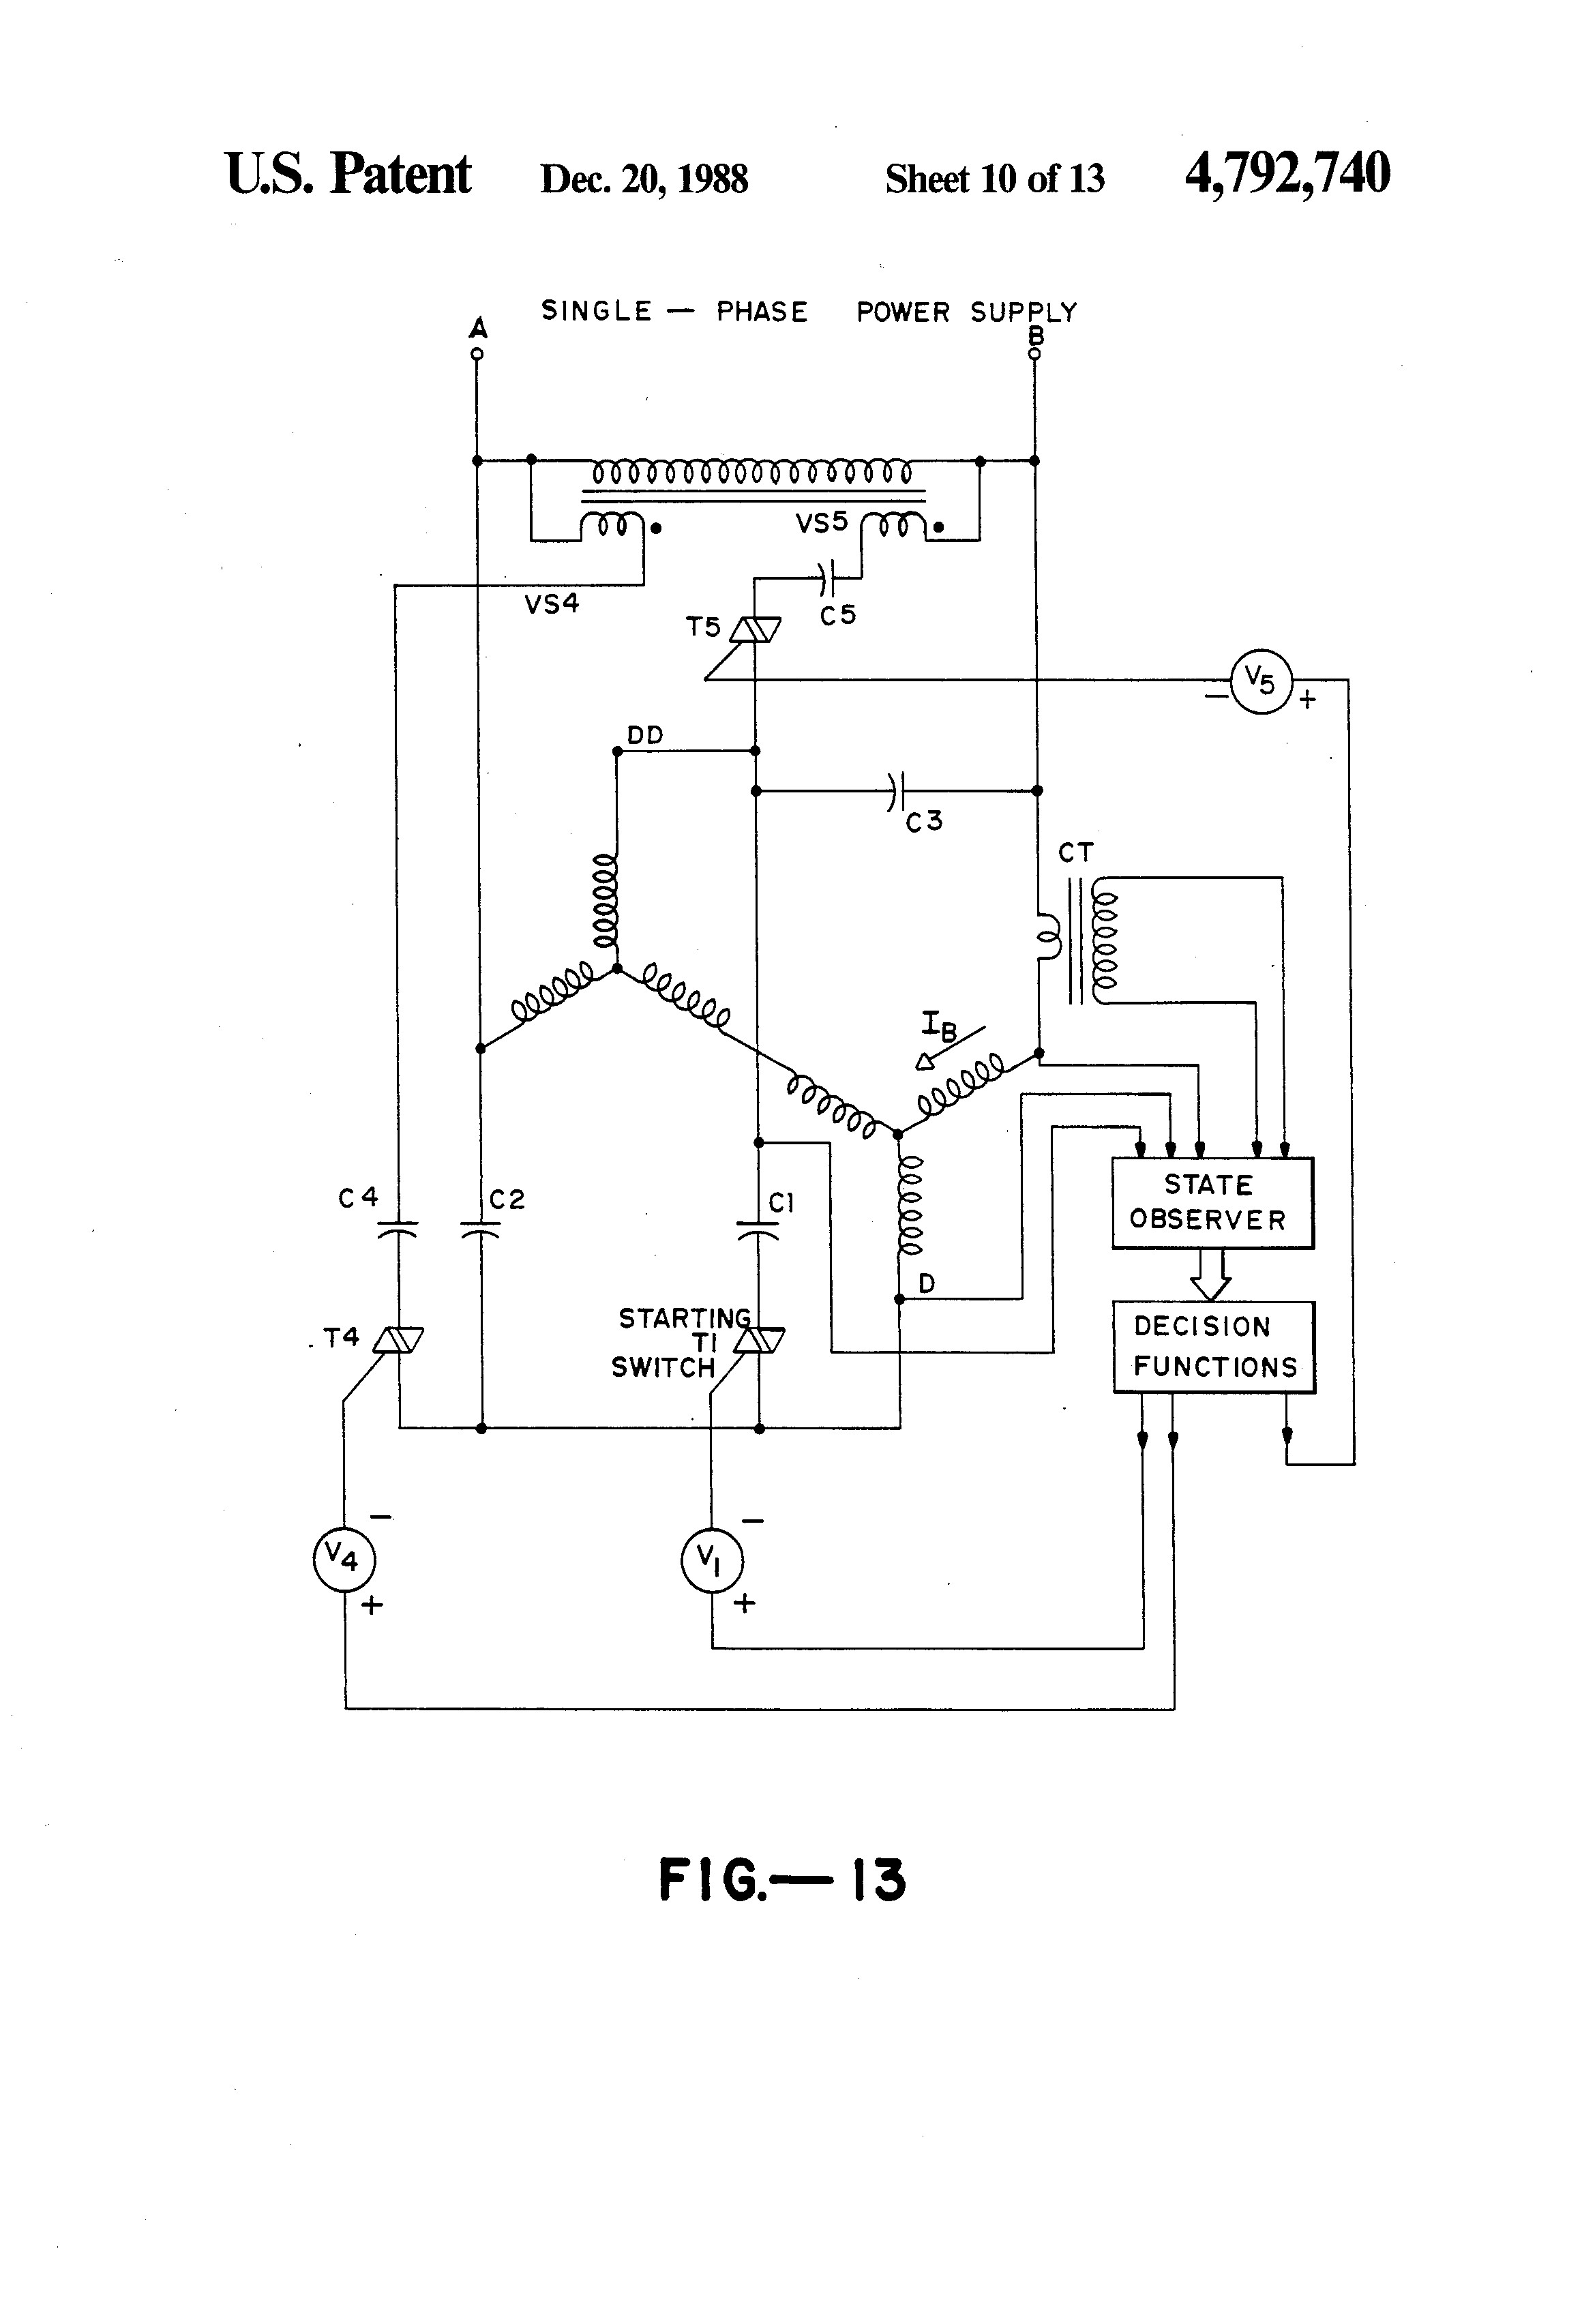 Wiring diagram for single phase motor patent us three phase patent us three phase induction motor with single drawing asfbconference2016 Choice Image